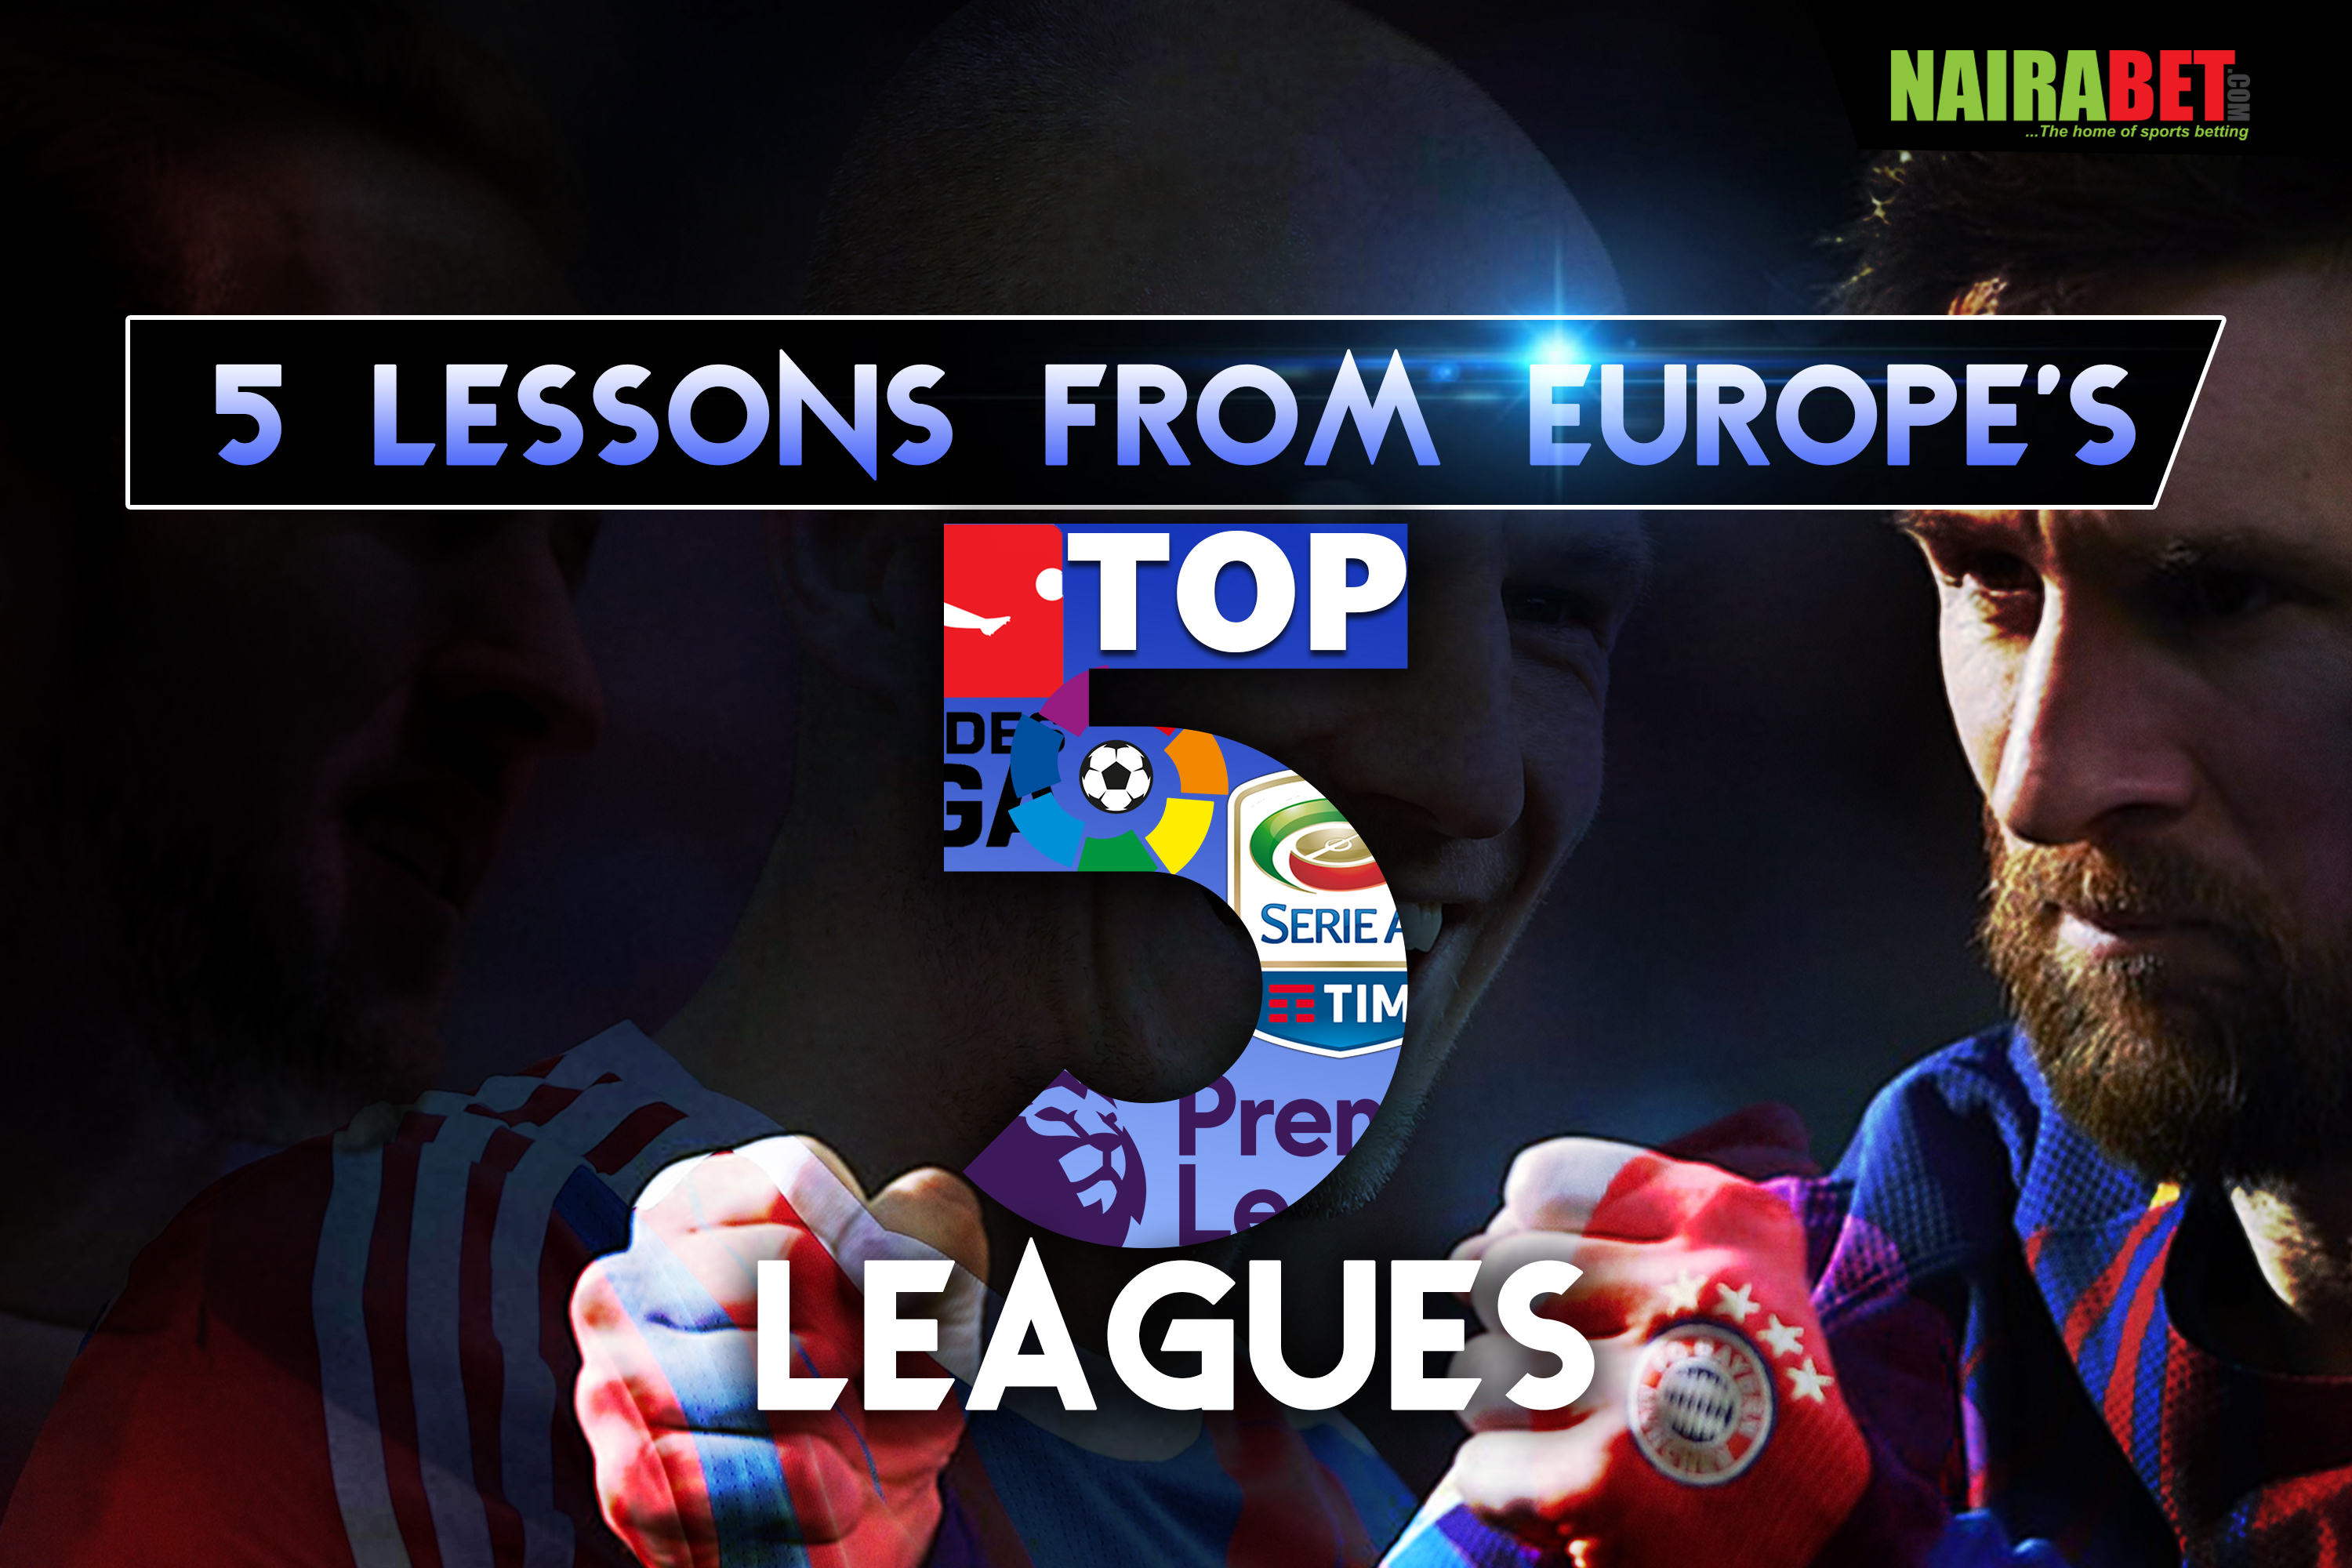 europe top 5 leagues lessons